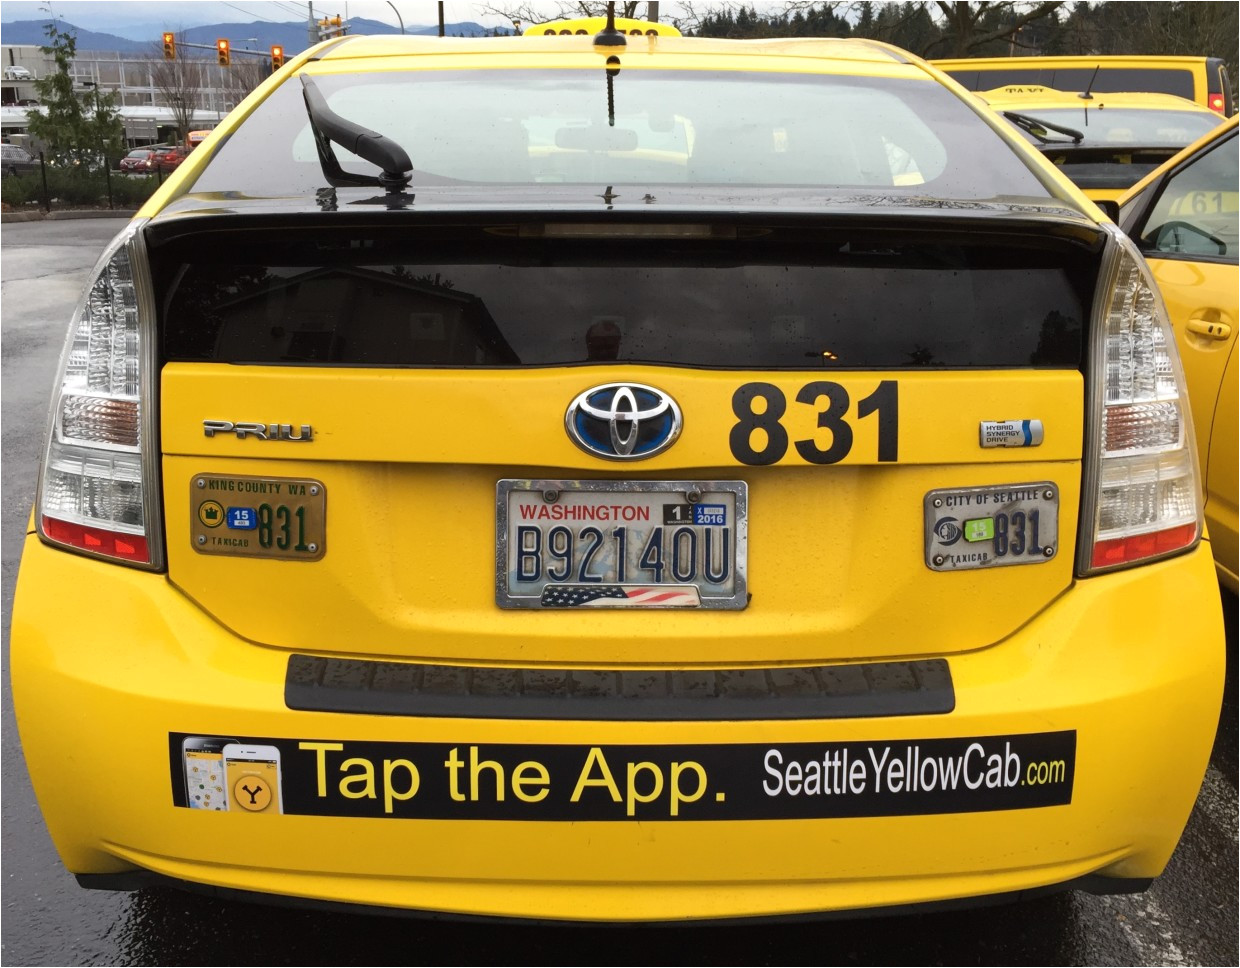 seattle yellow cab reported inaccurate receipts to officials for airport trips audit finds geekwire jpg 1240x968